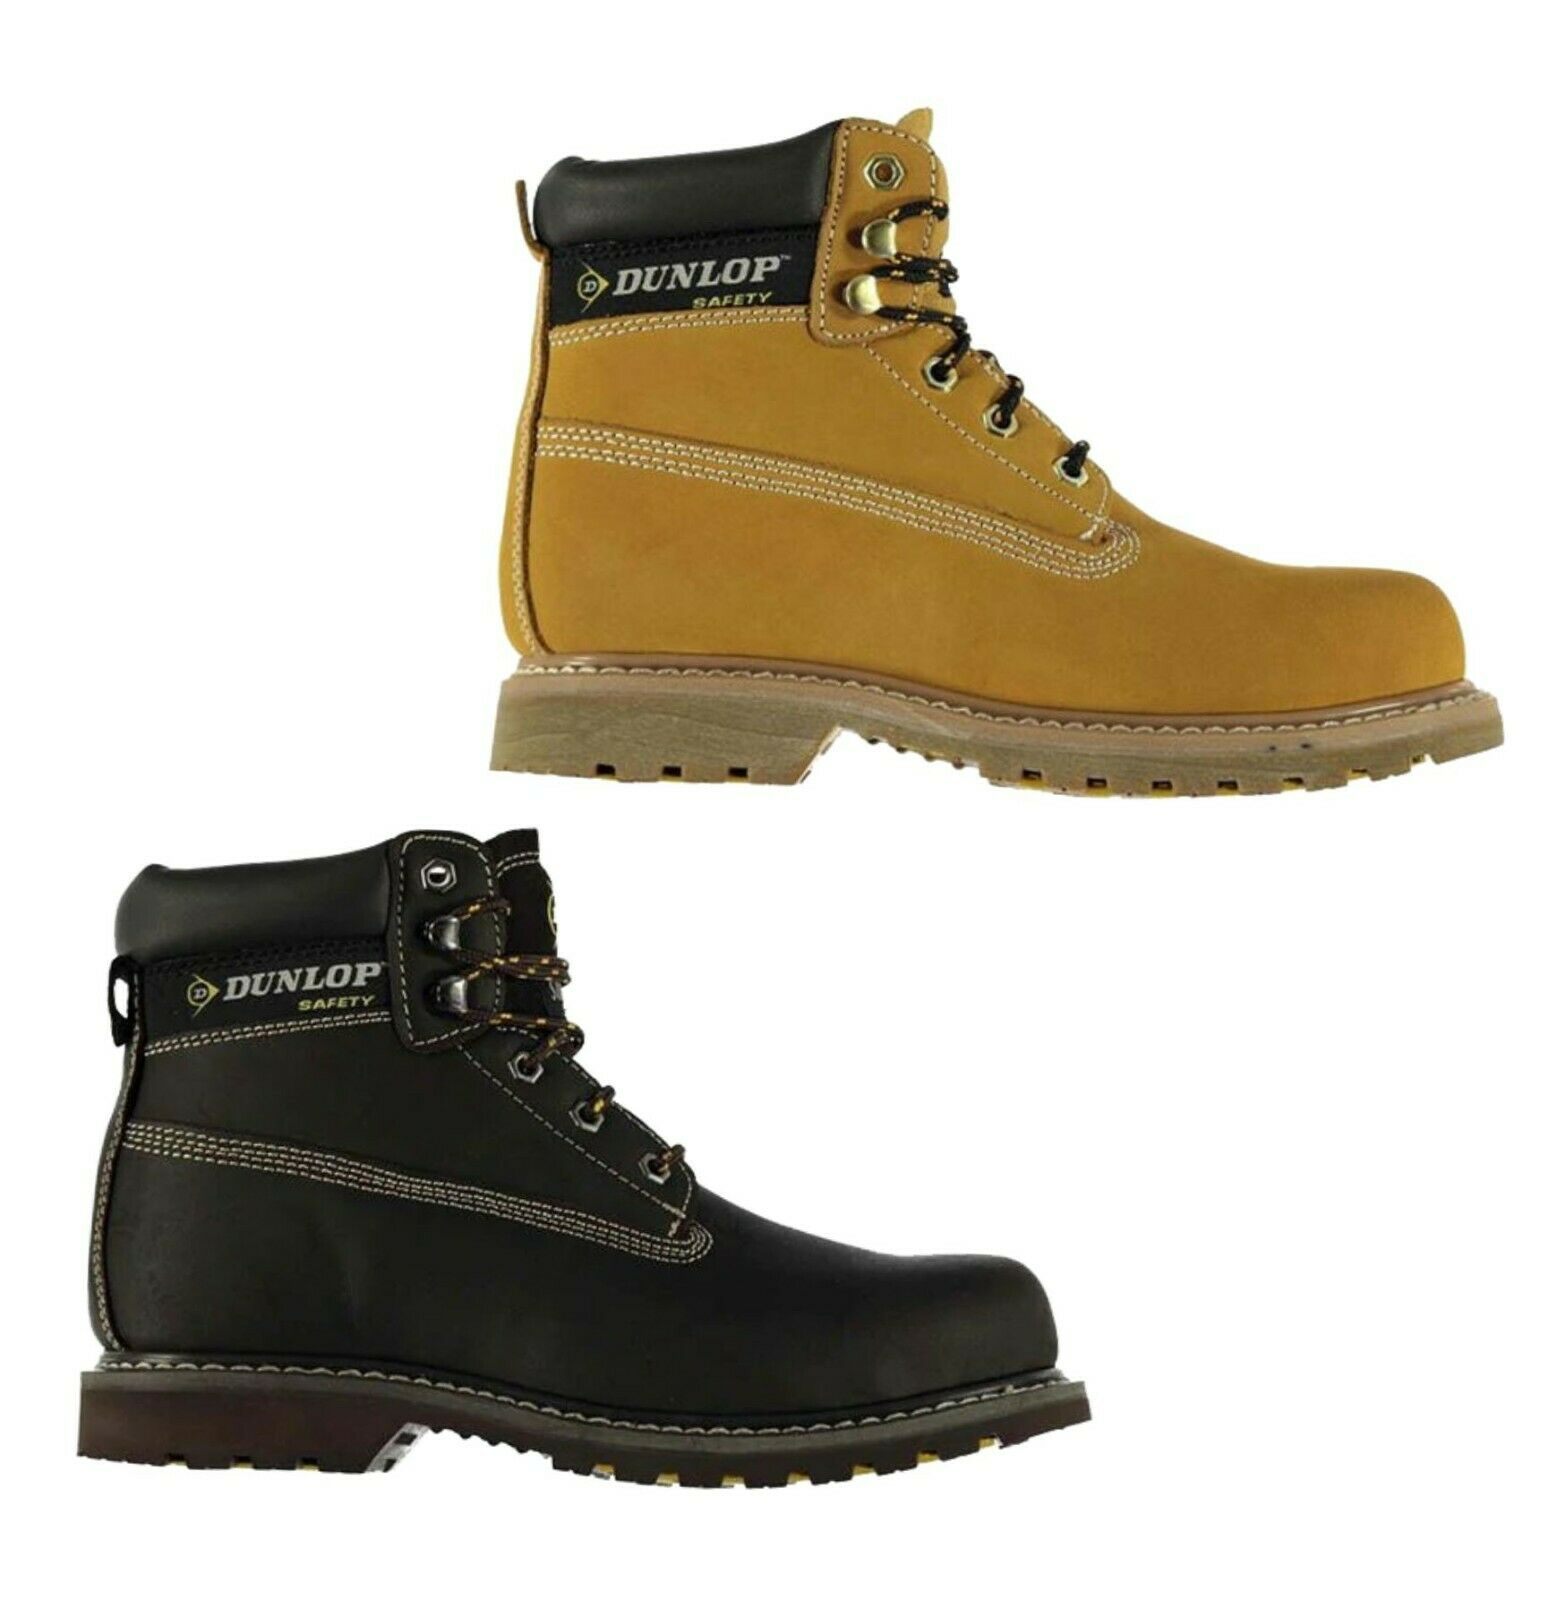 Mens Dunlop Workwear Casual Nevada Steel Toe Cap Safety Boots Sizes from 6 to 12